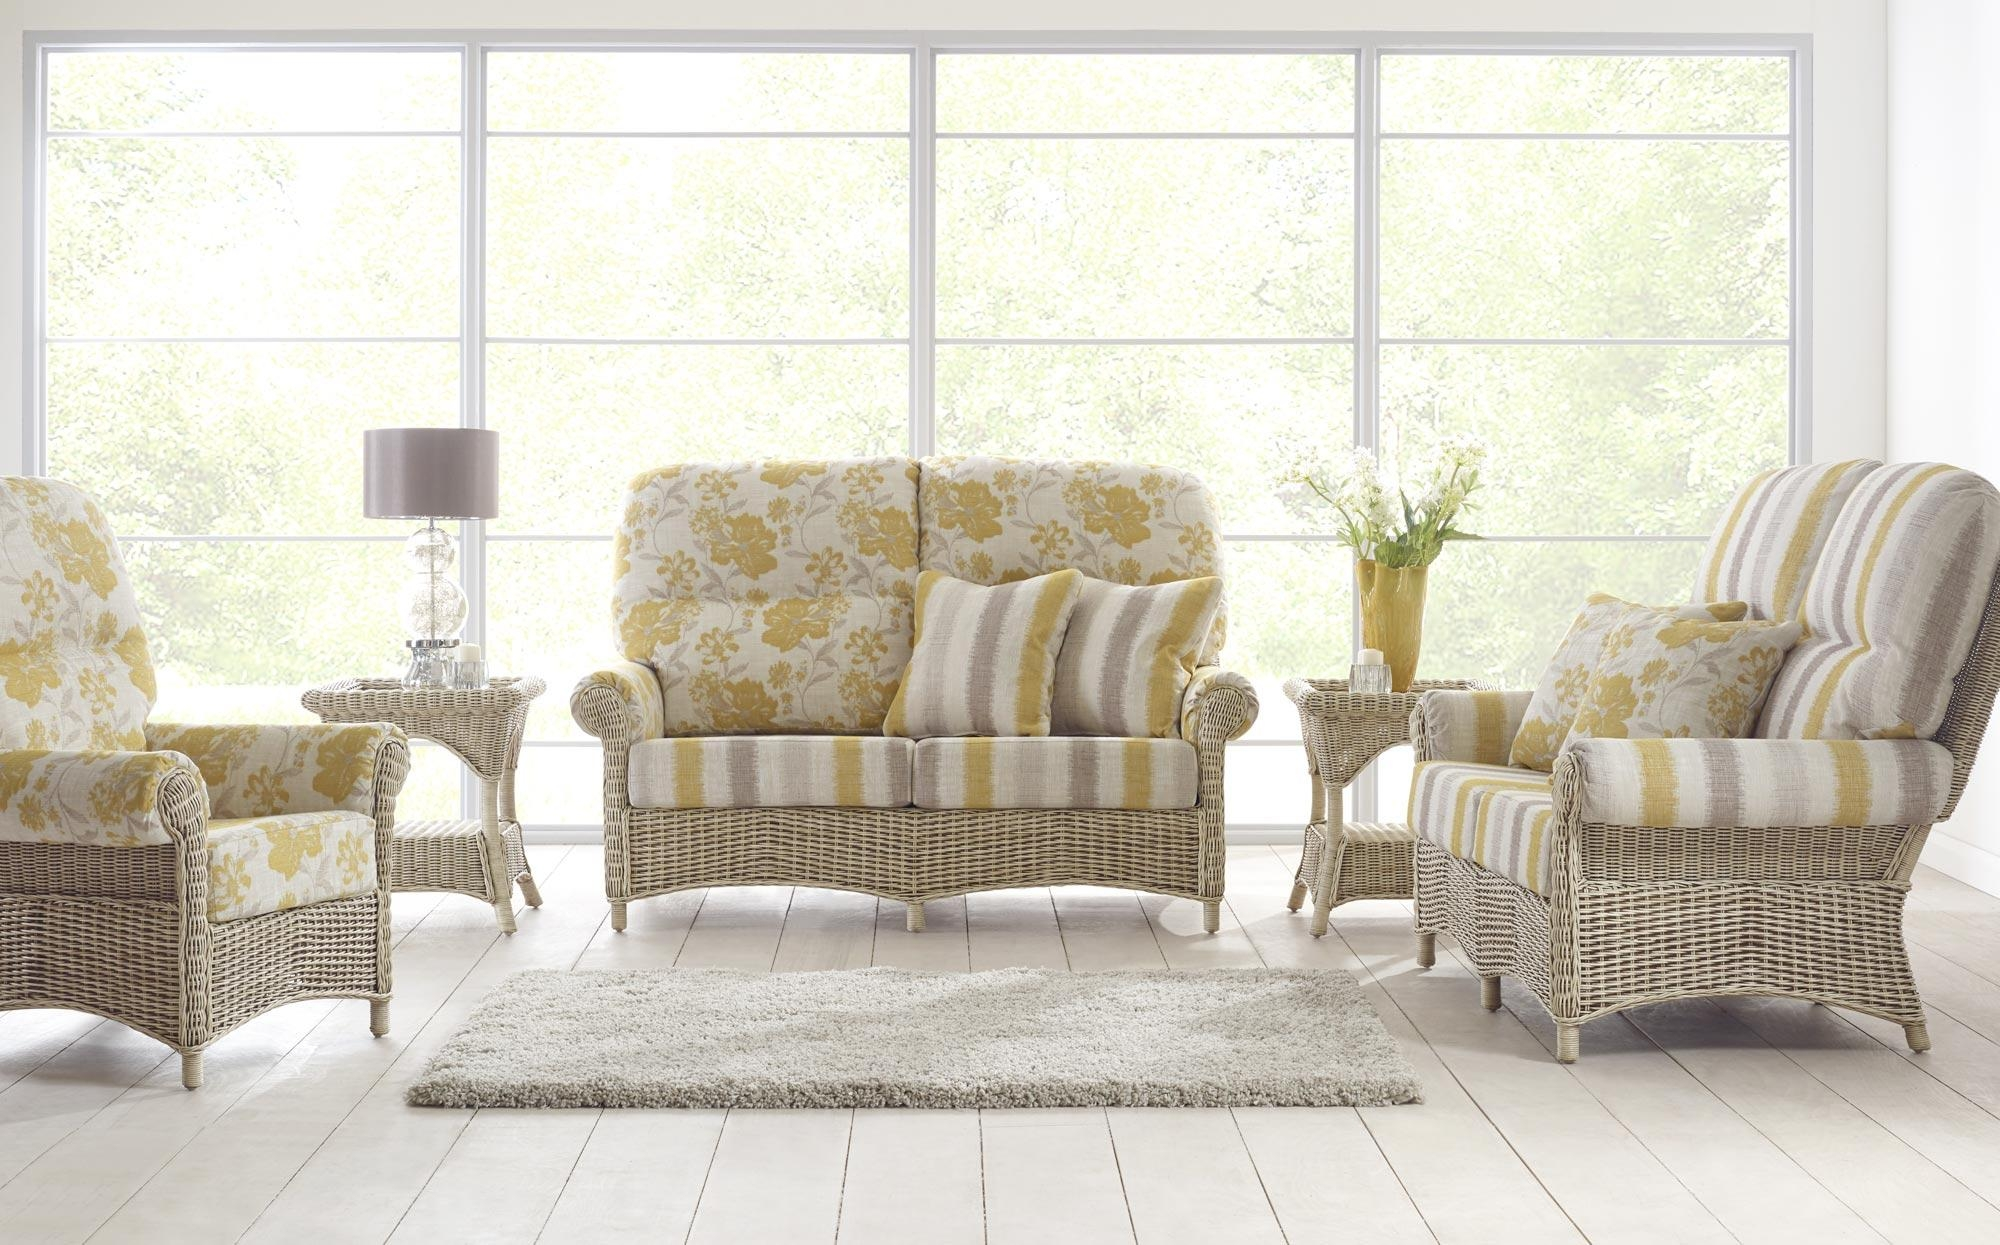 Cane Furniture | Rattan | Wicker |Conservatory Furniture | Vaseys Throughout Cane Sofas (Image 4 of 20)